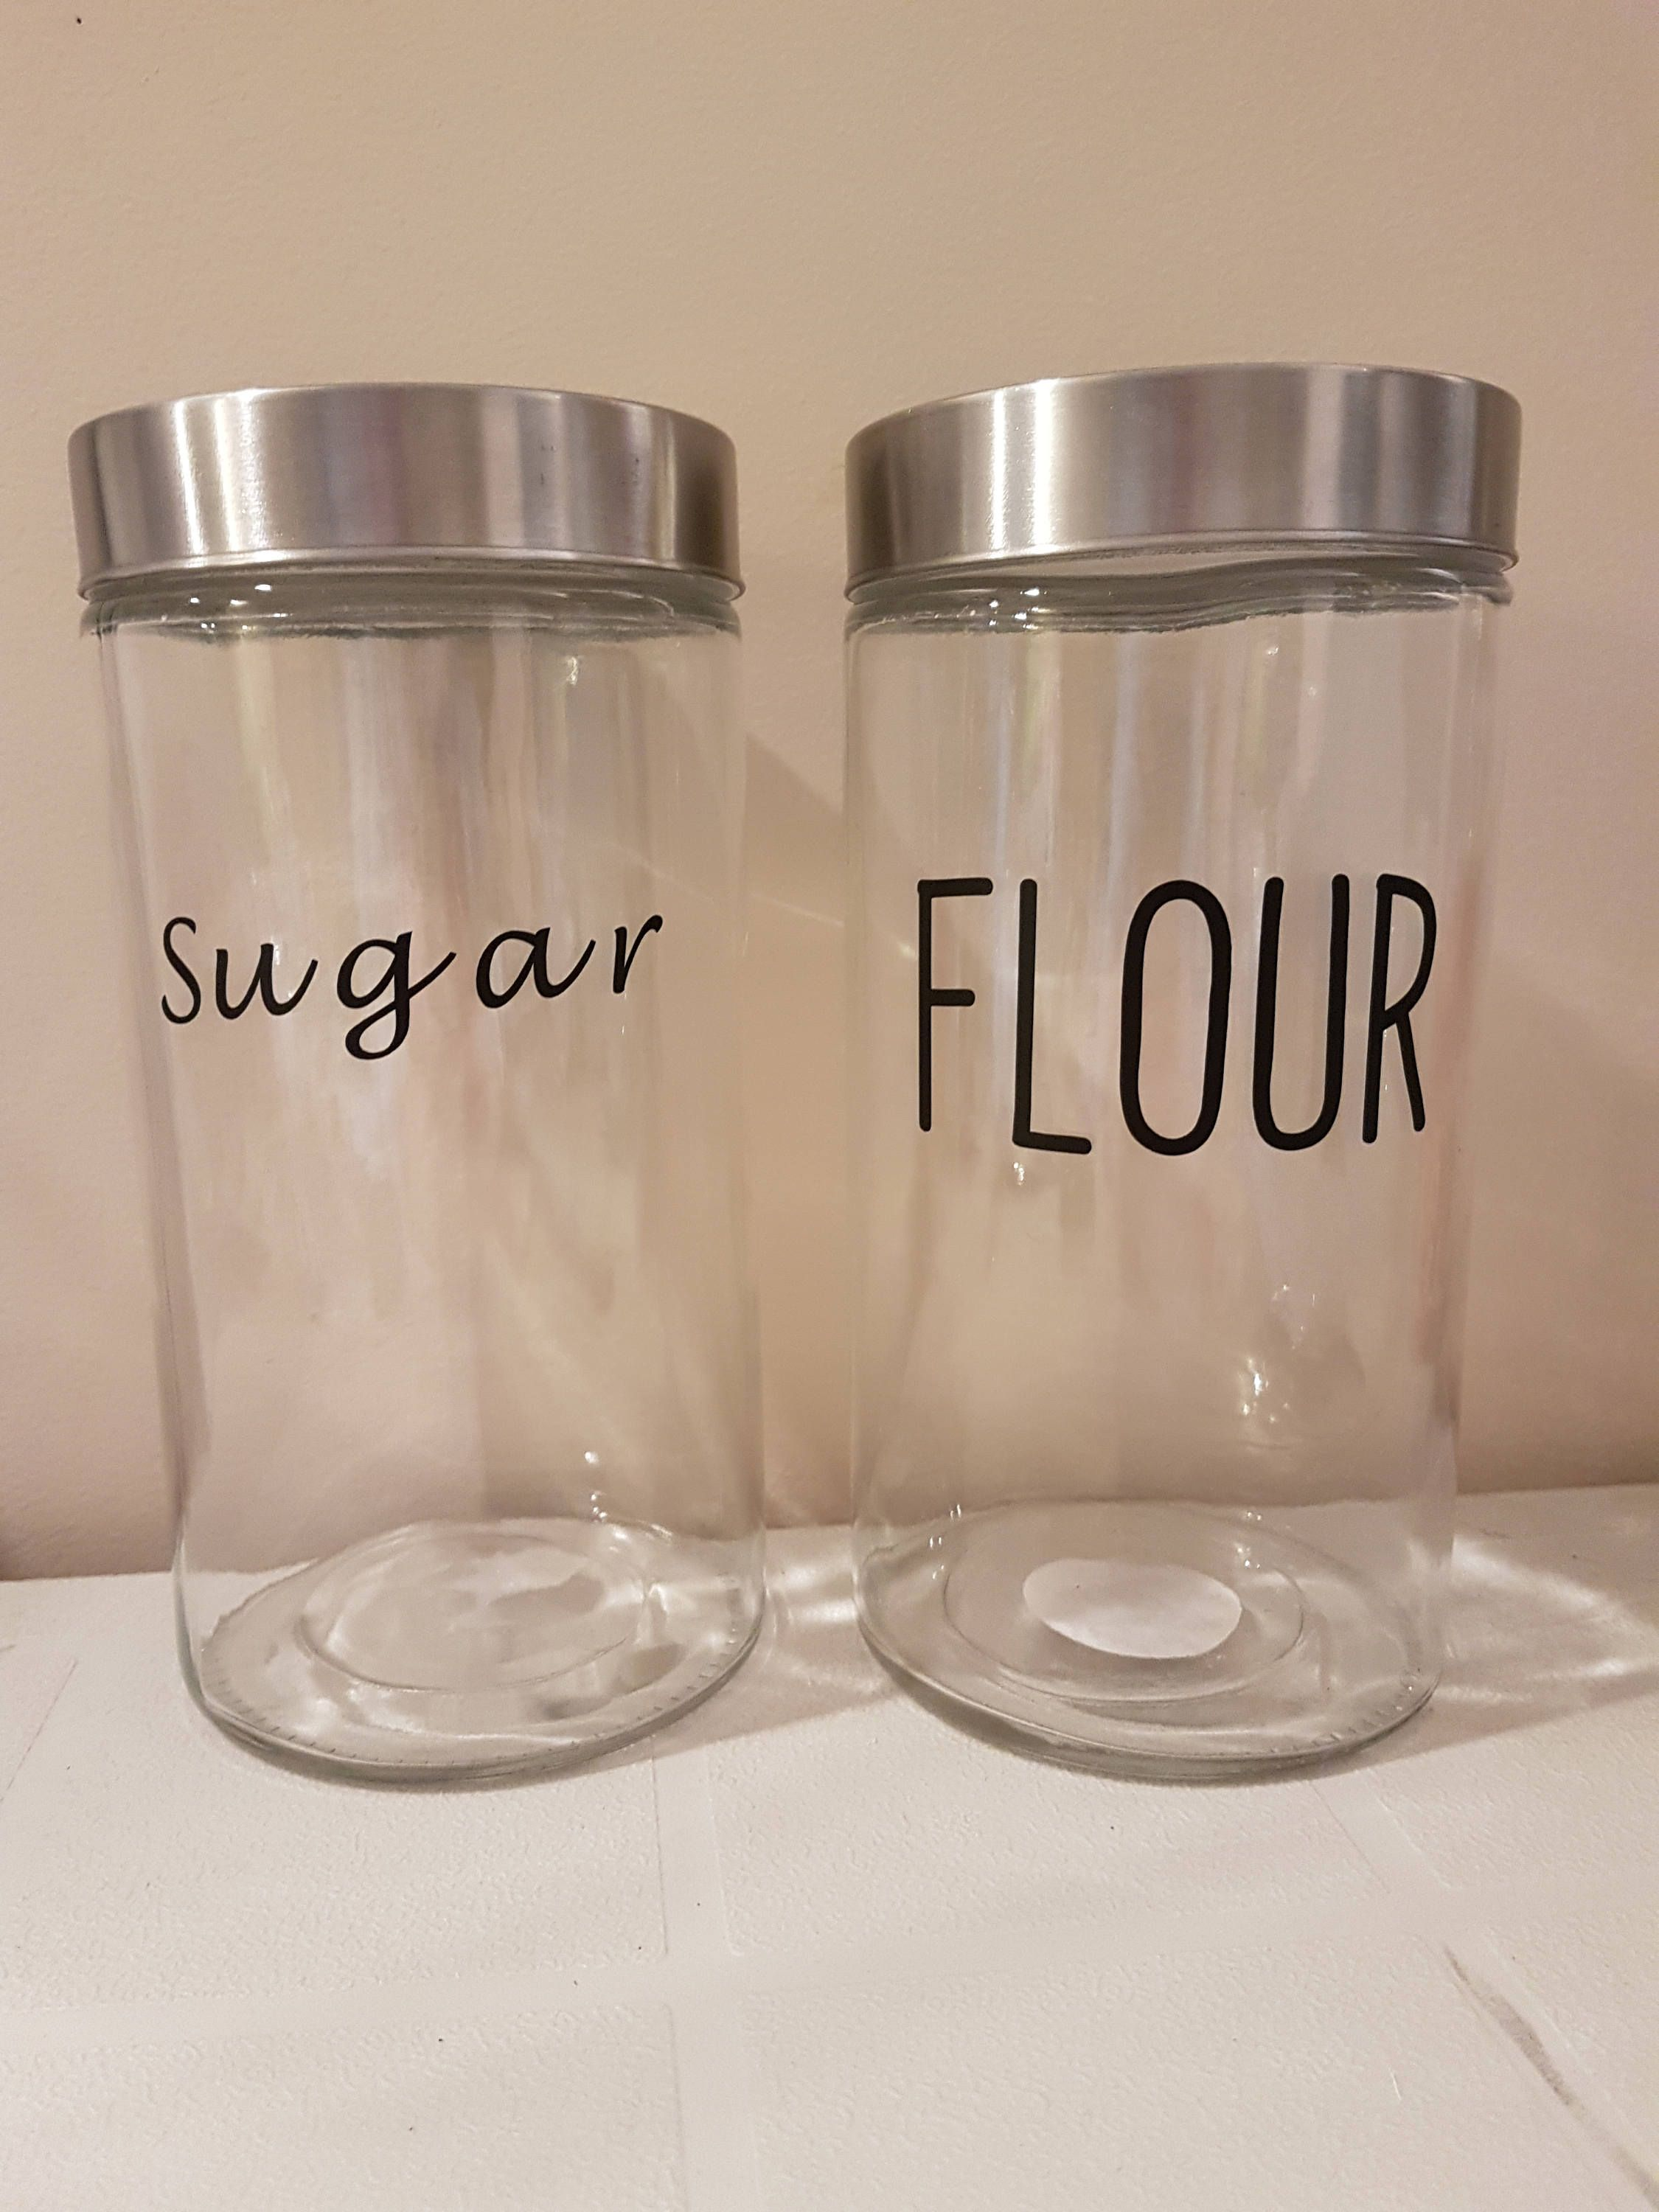 Kitchen canisters glass  Kitchen CanistersCanister DecalsKitchen Canister DecalPantry